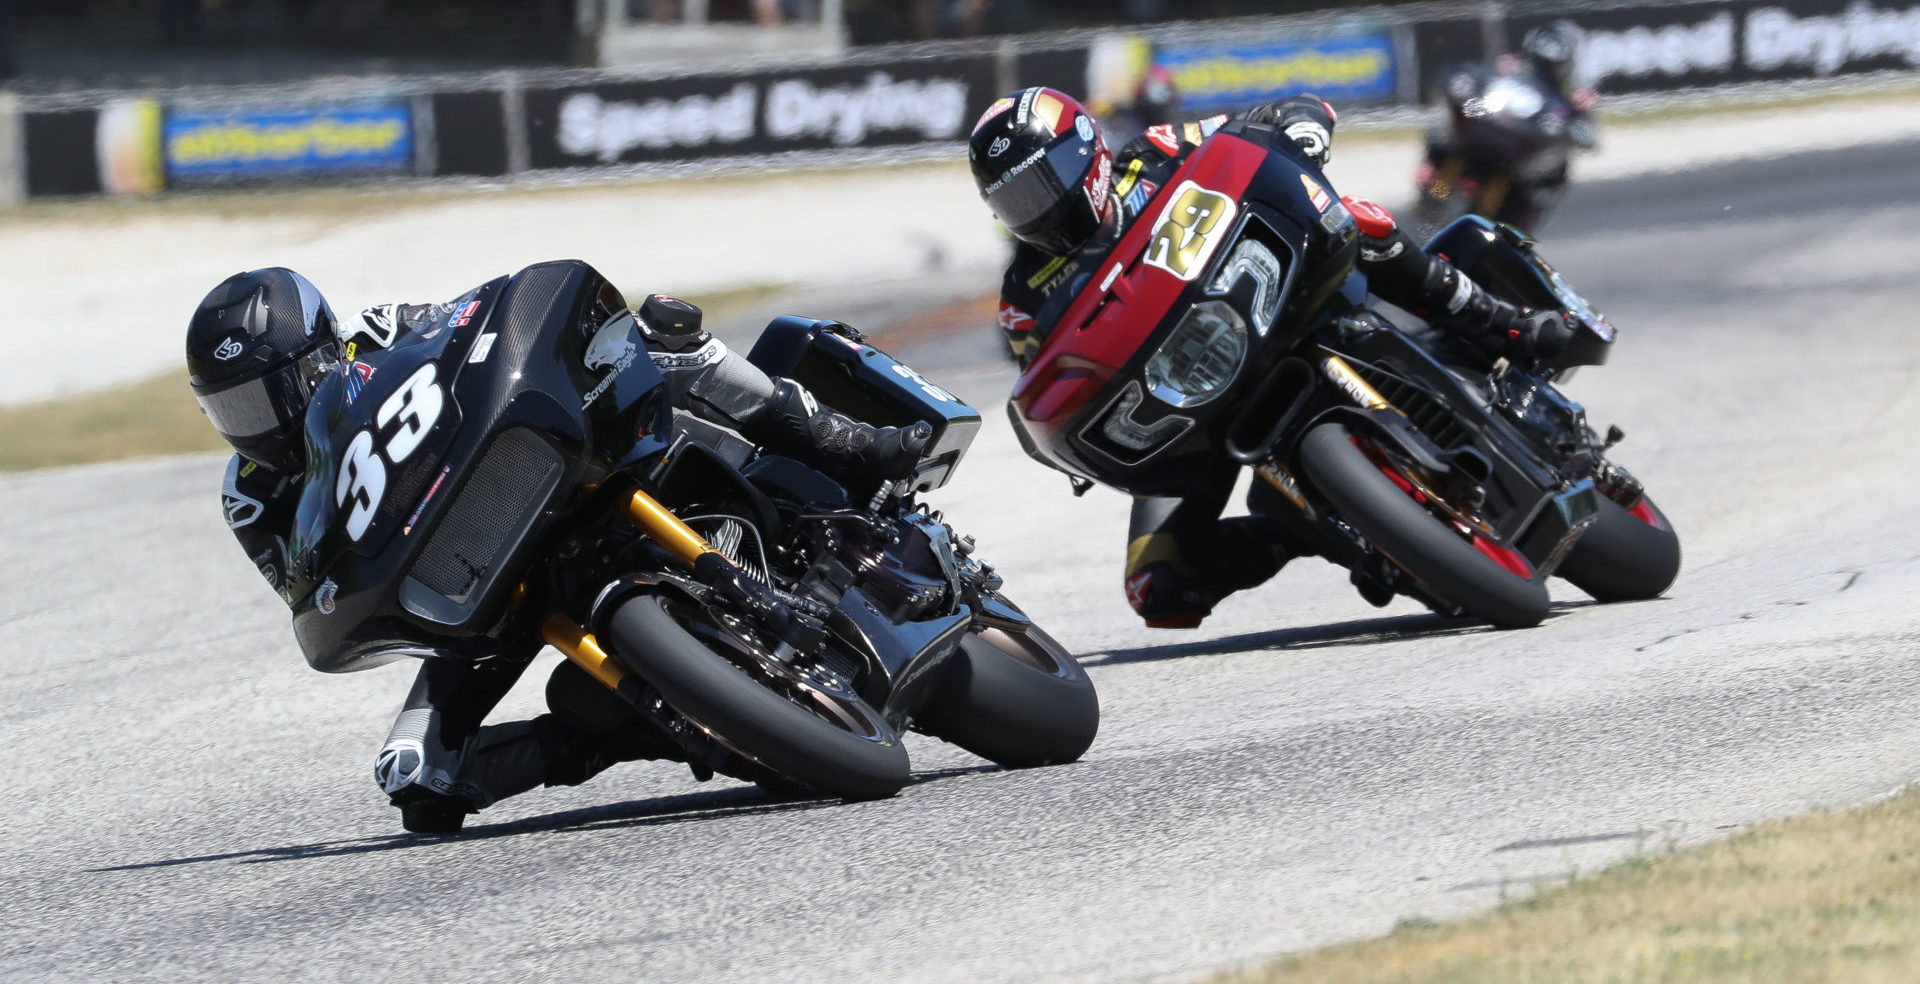 Kyle Wyman (33) and Tyler O'Hara (29) racing for the lead of the King Of The Baggers race at Road America in 2021. Photo by Brian J. Nelson.